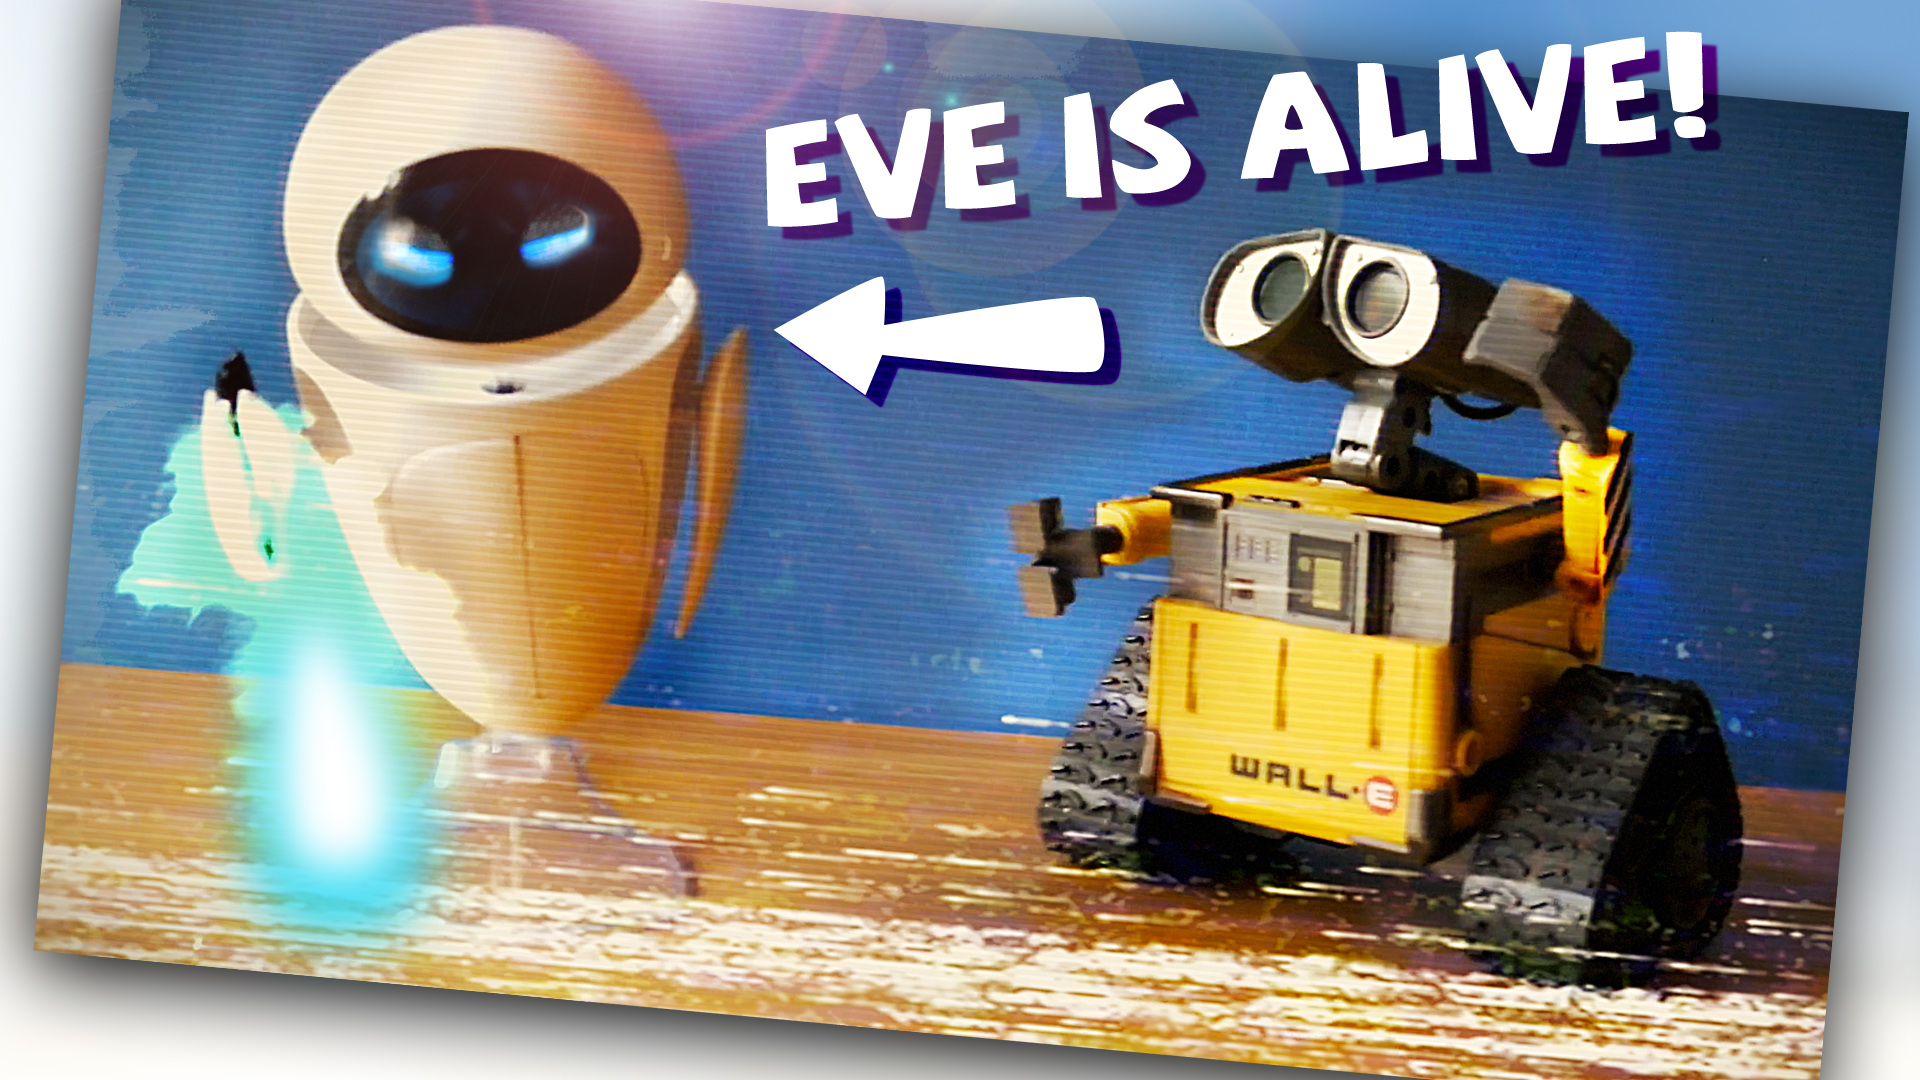 EVE IS ALIVE! Caught on camera   What happens when Wall-E toys are left alone